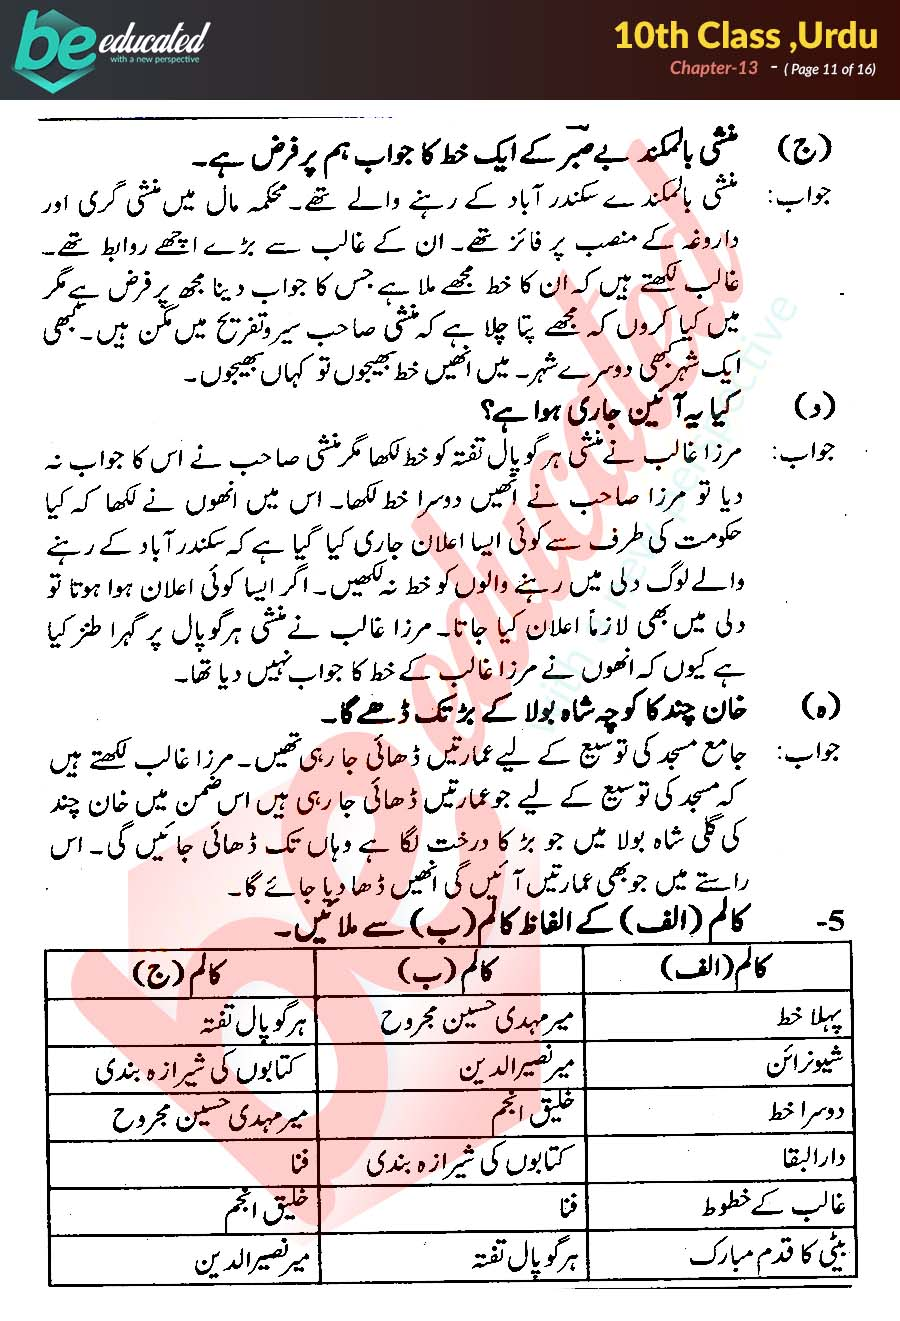 Chapter 13 Urdu 10th Class Notes - Matric Part 2 Notes